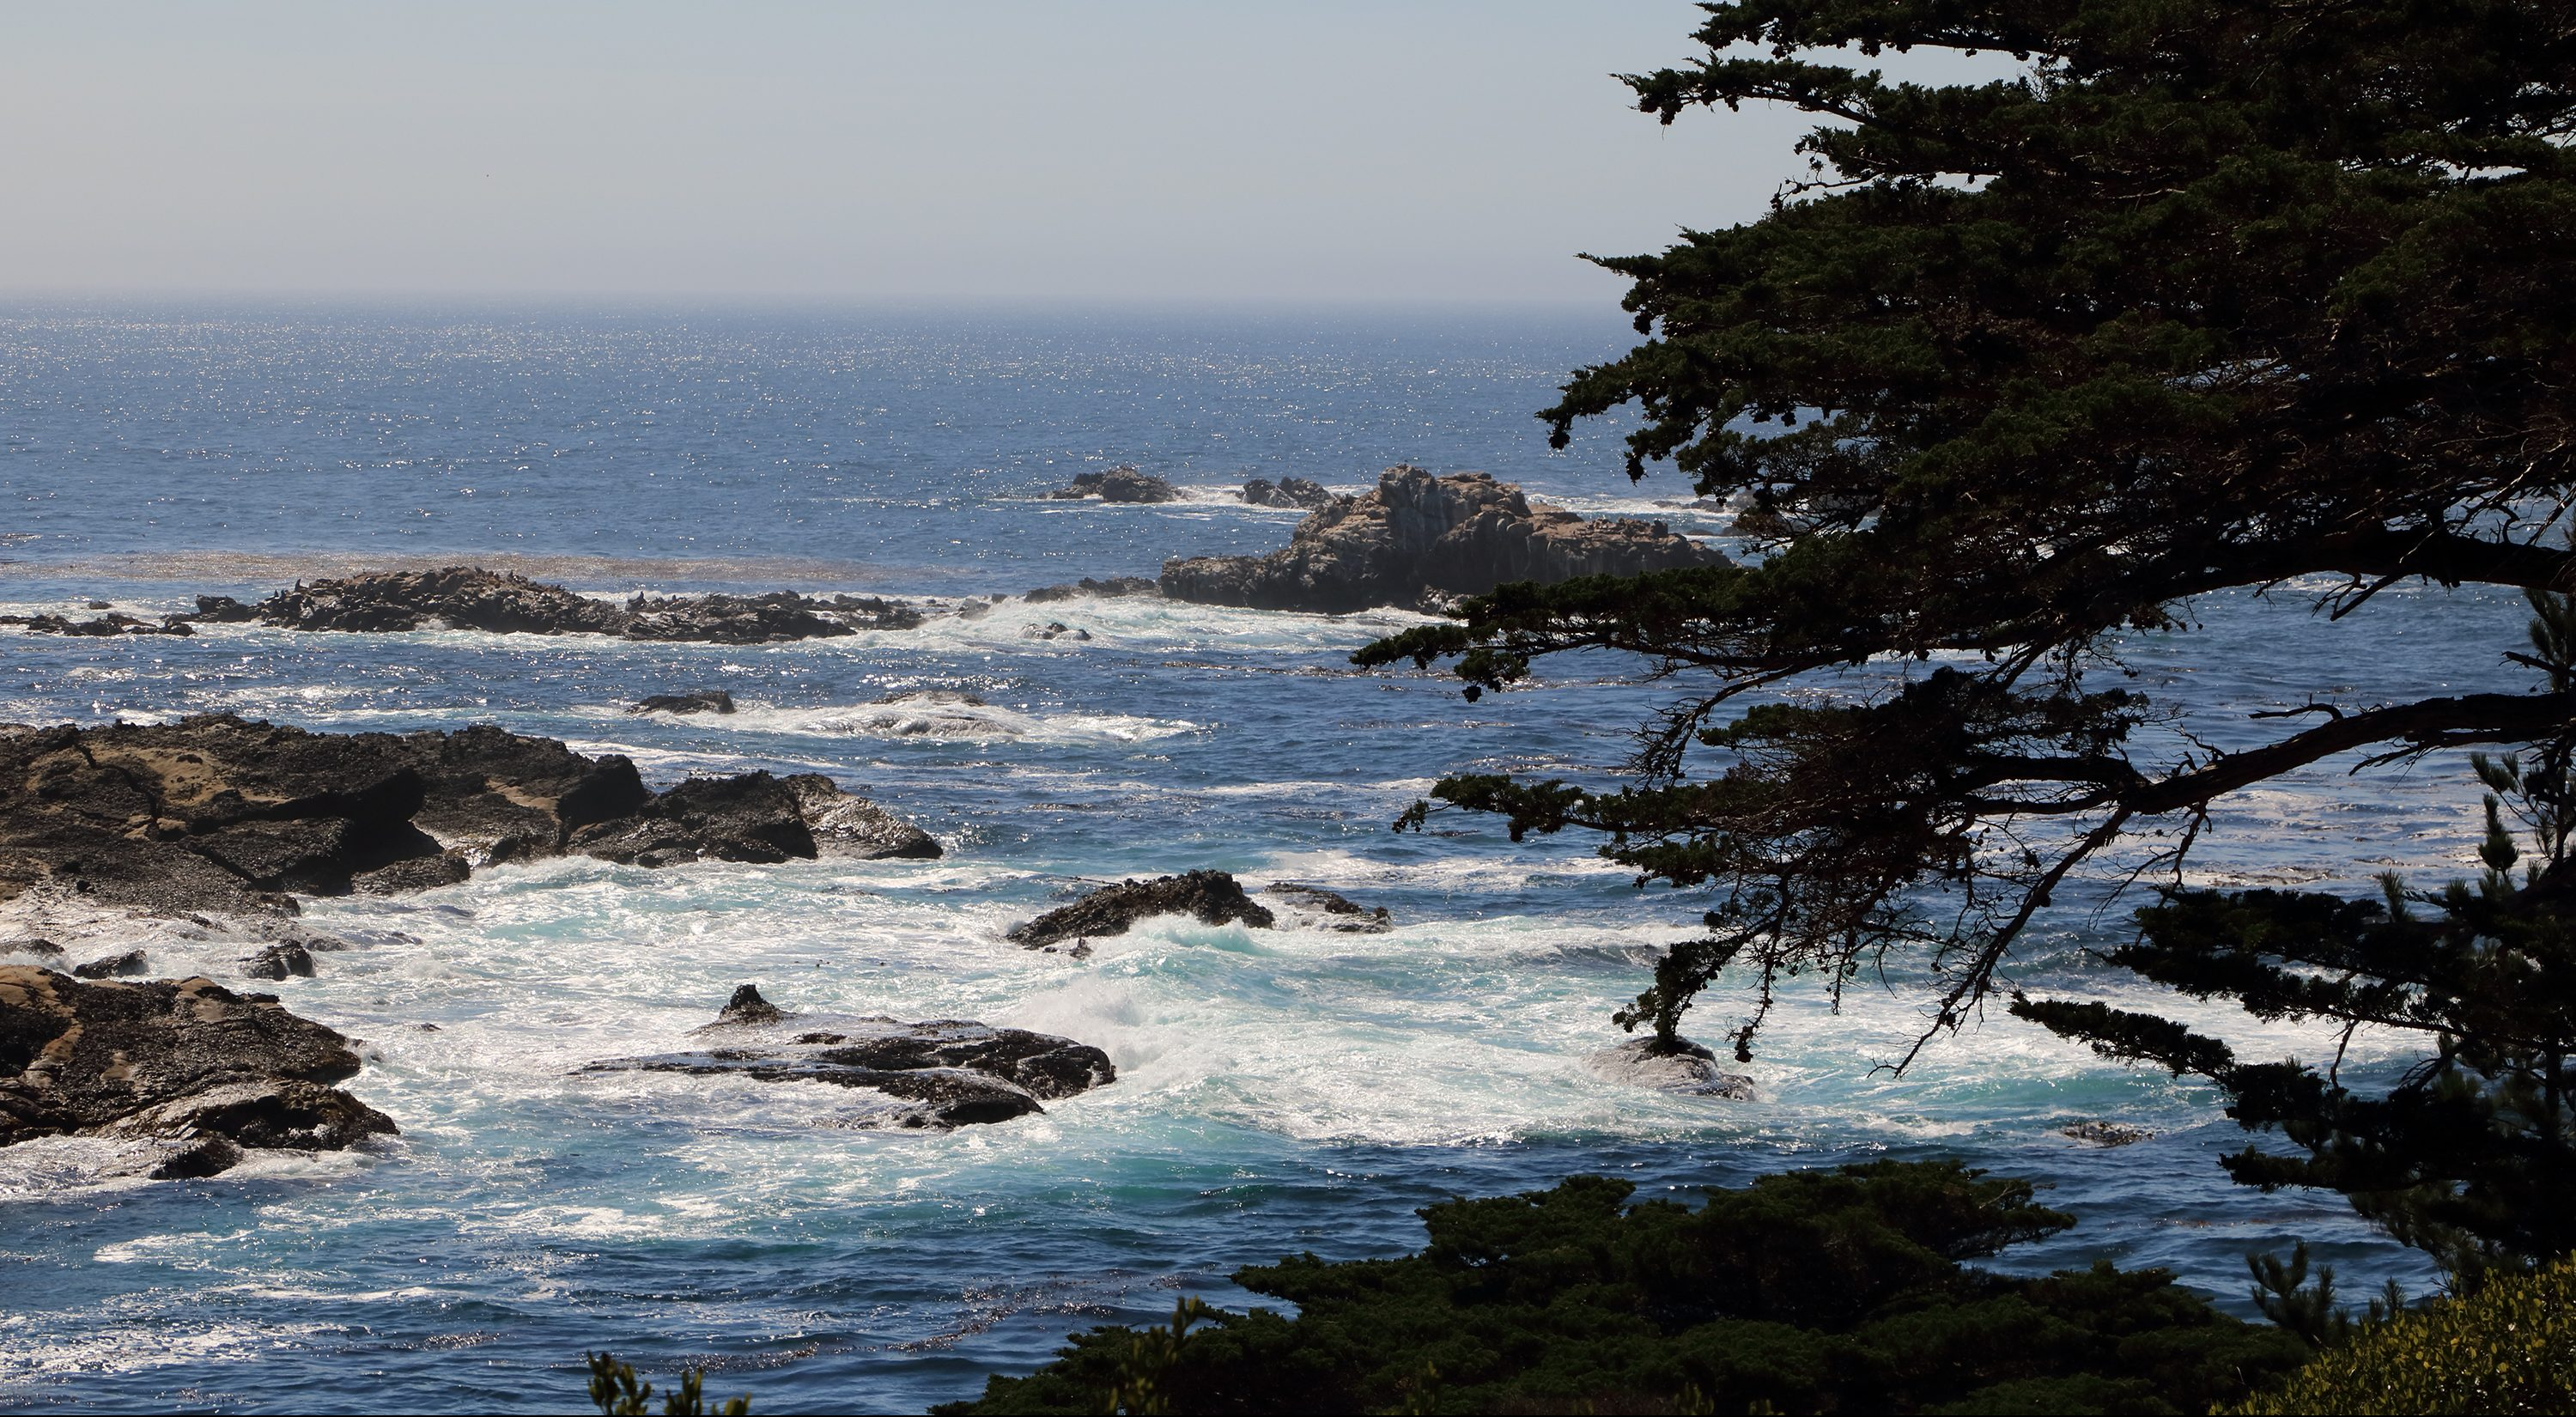 Point Lobos California Pacific Coast Highway 1 Big Sur